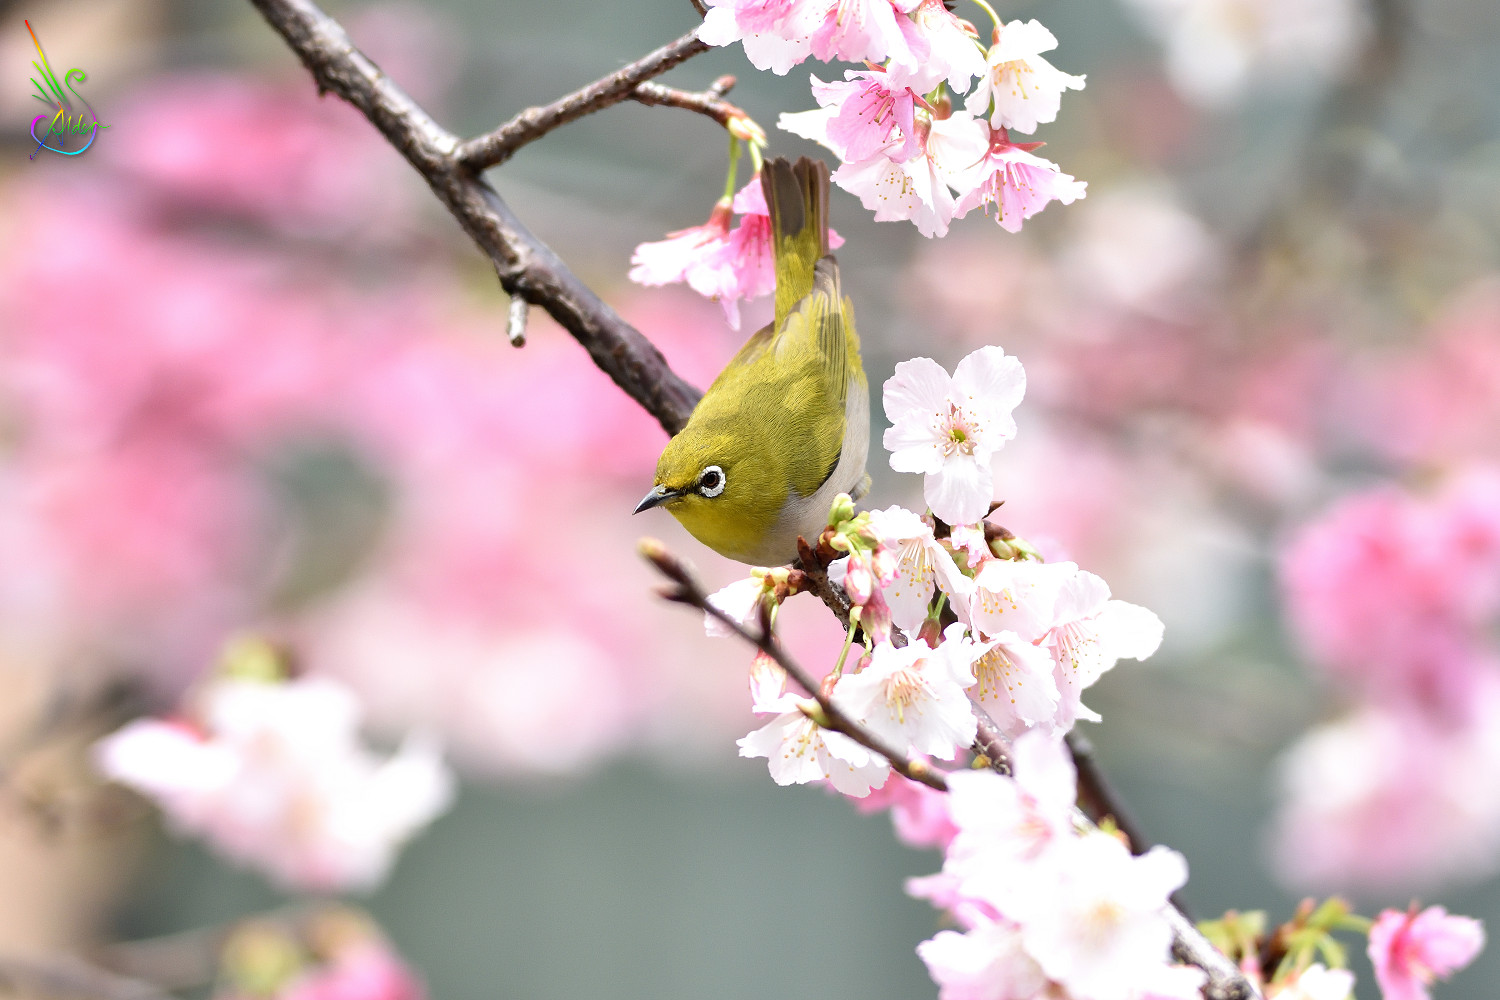 Sakura_White-eye_9943